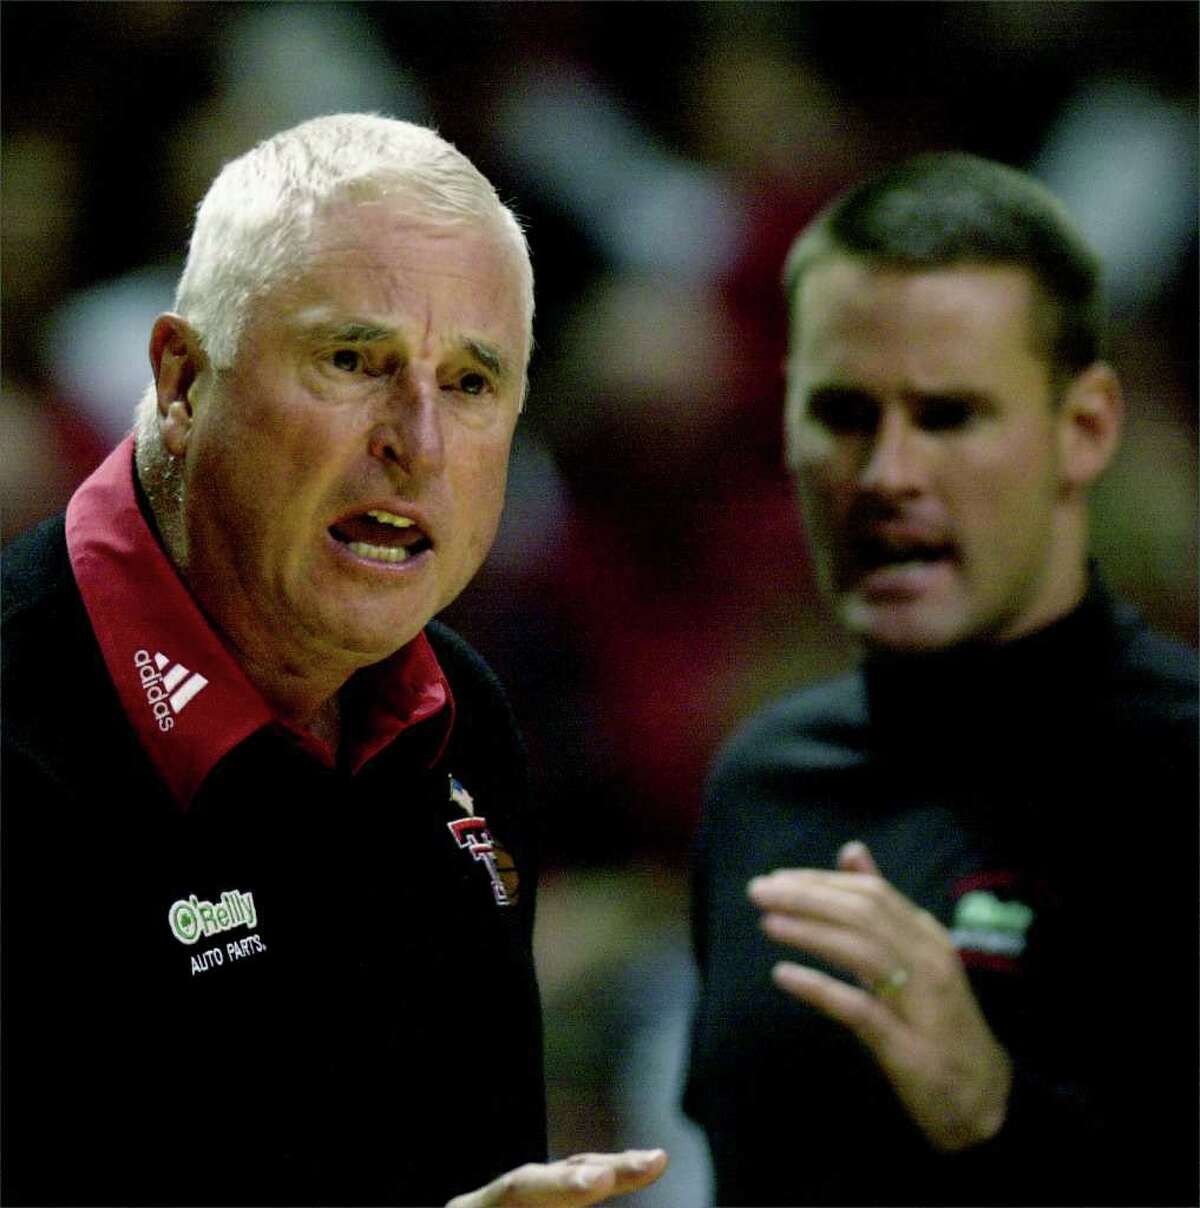 Texas Tech coach Bob Knight disputes a charging call during the first half against Centenary, Saturday night, Nov. 27, 2004, in Lubbock, Texas. At right is Knight's son and associate coach Pat Knight. (AP Photo/Lubbock Avalanche-Journal, Joe Don Buckner)